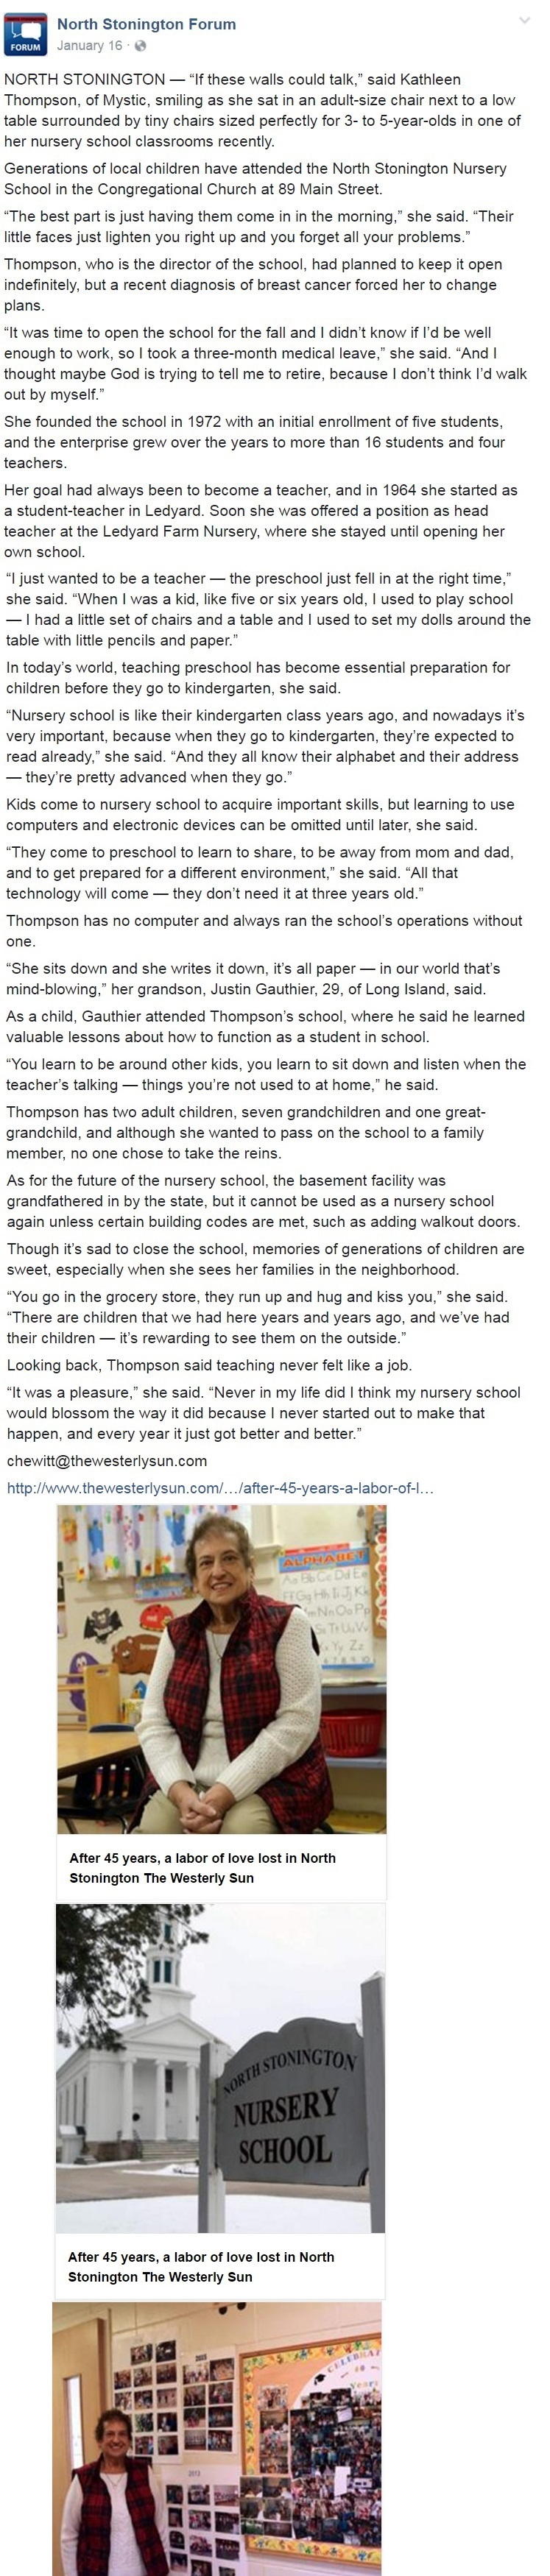 The North Stonington Nursery School Closed Kathleen S Thompson May 6th 1939 5th 2017 Director For 45 Years